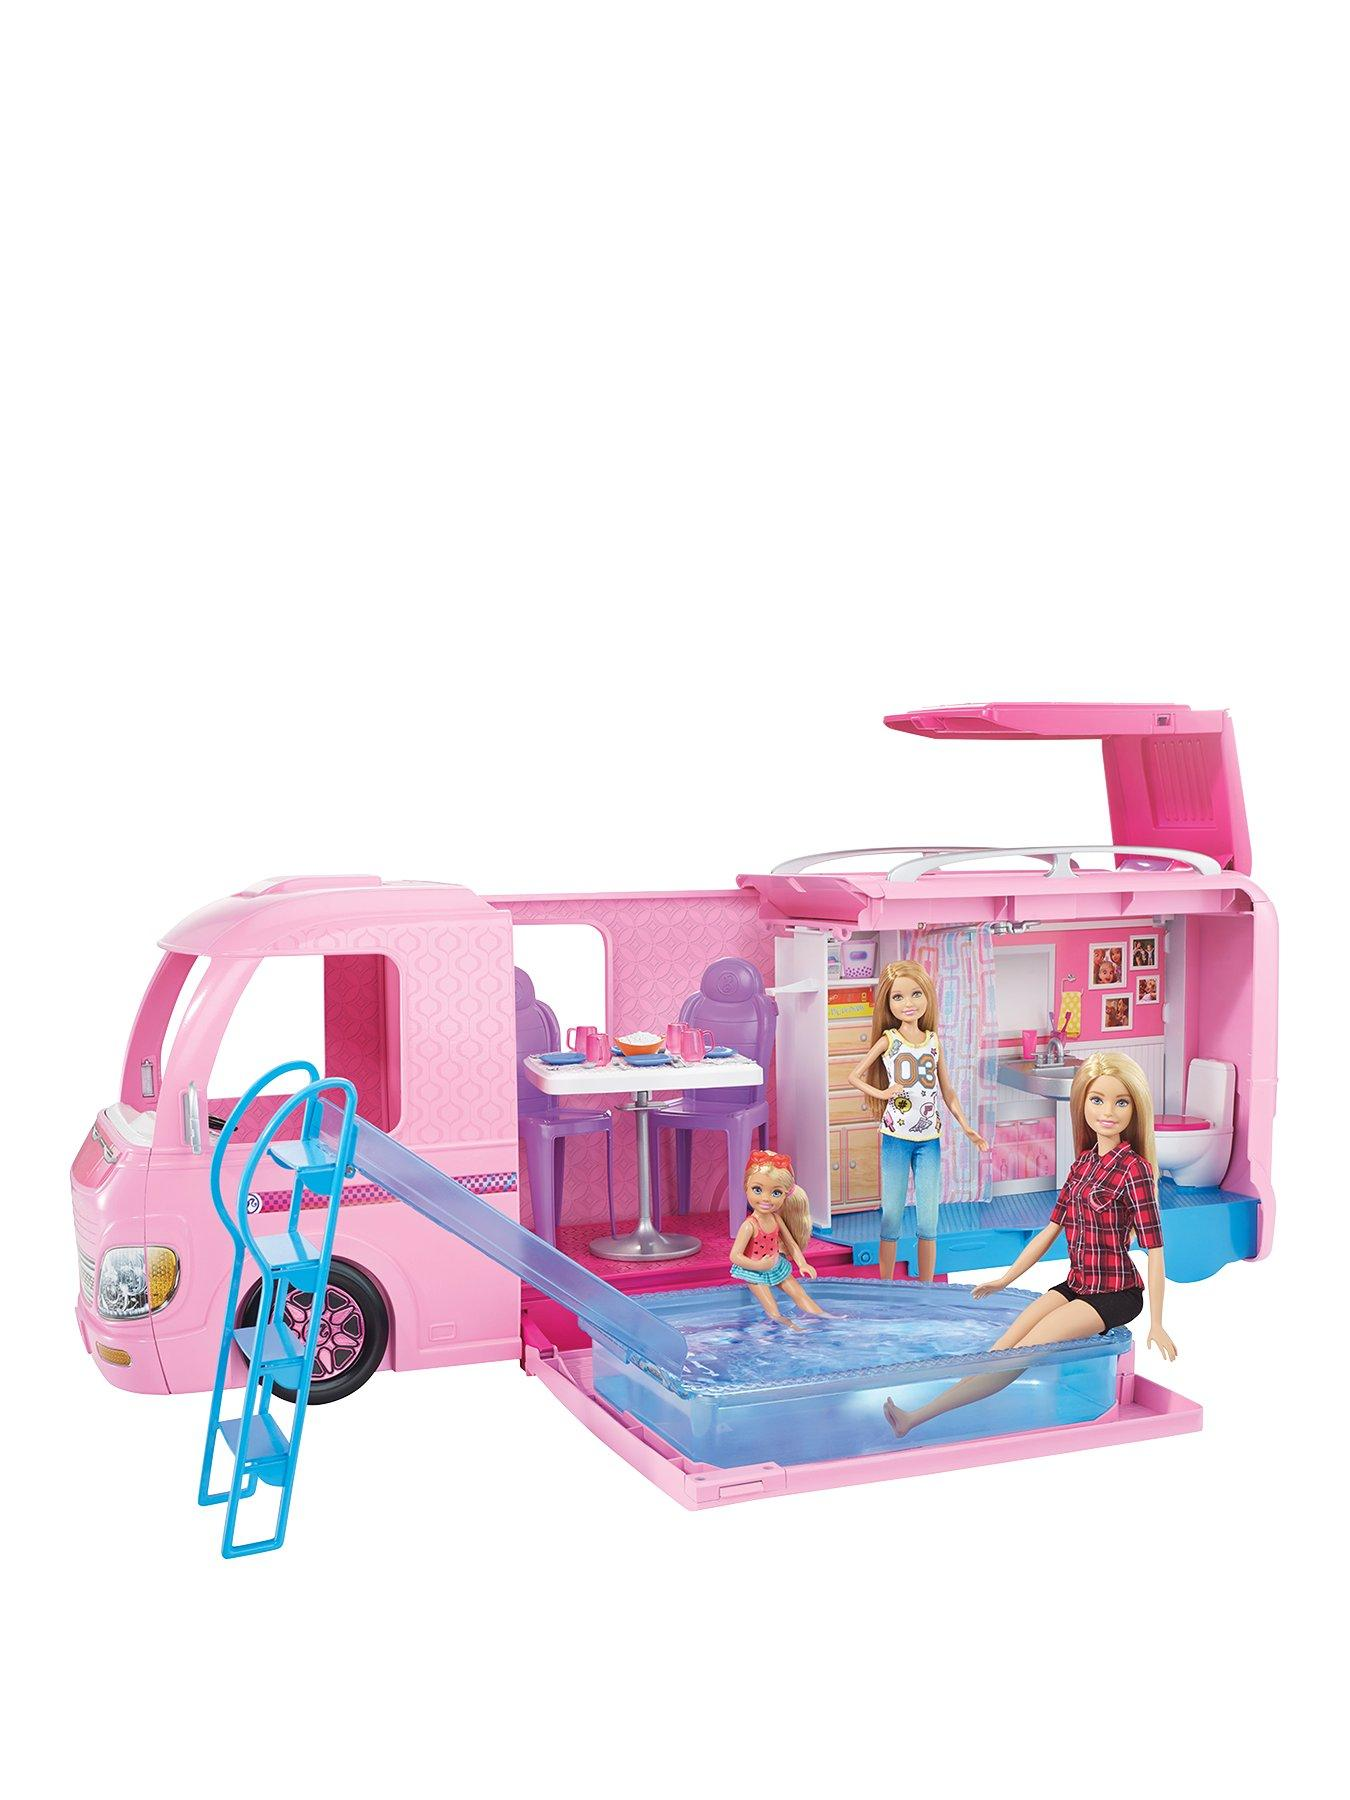 Compare prices for Barbie Dreamcamper and Playset With Pool